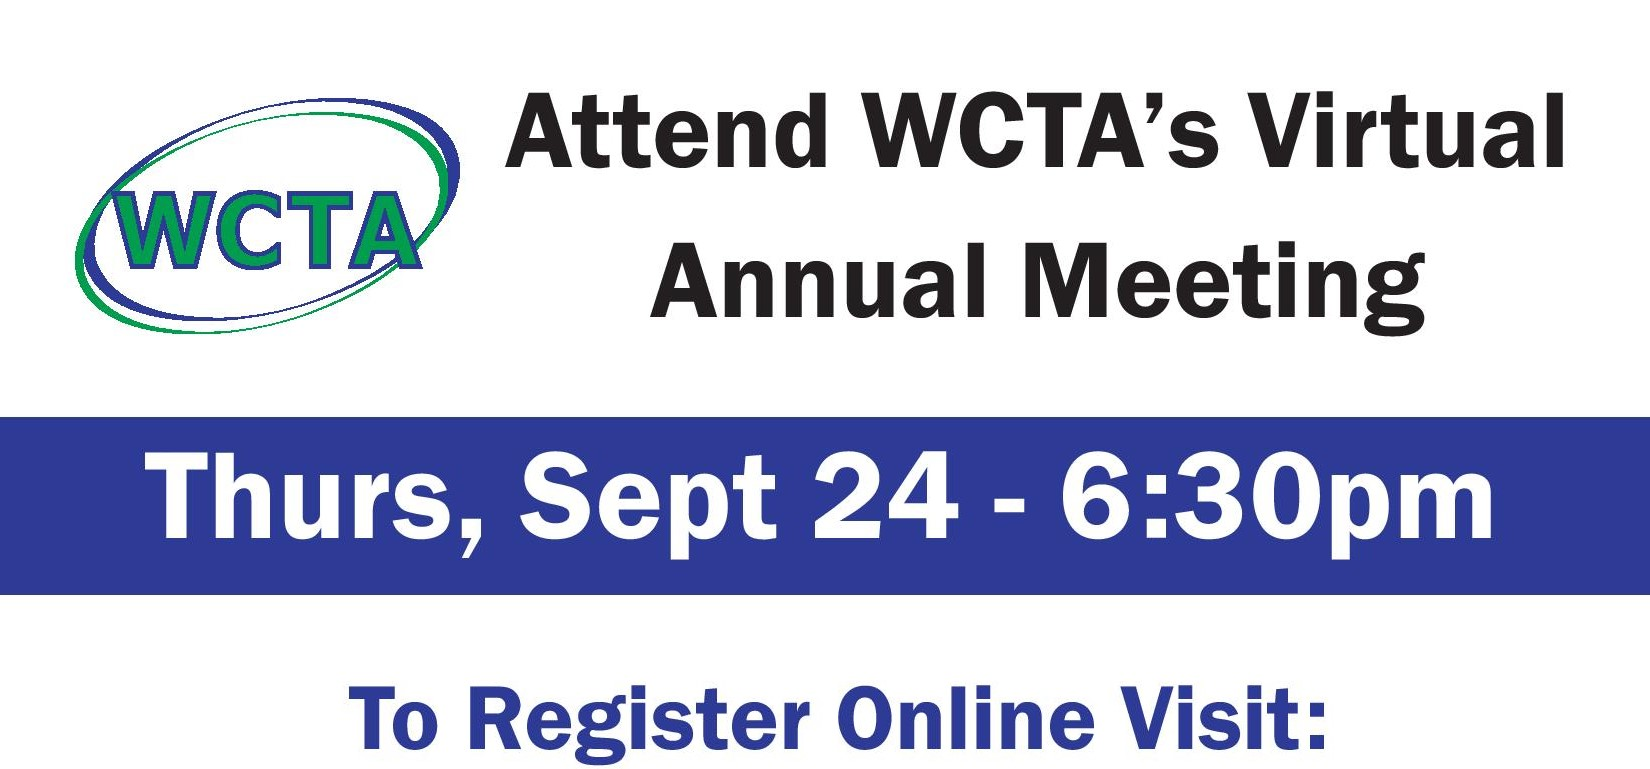 Annual Meeting September 24 at 6:30PM. Register online at the following link: